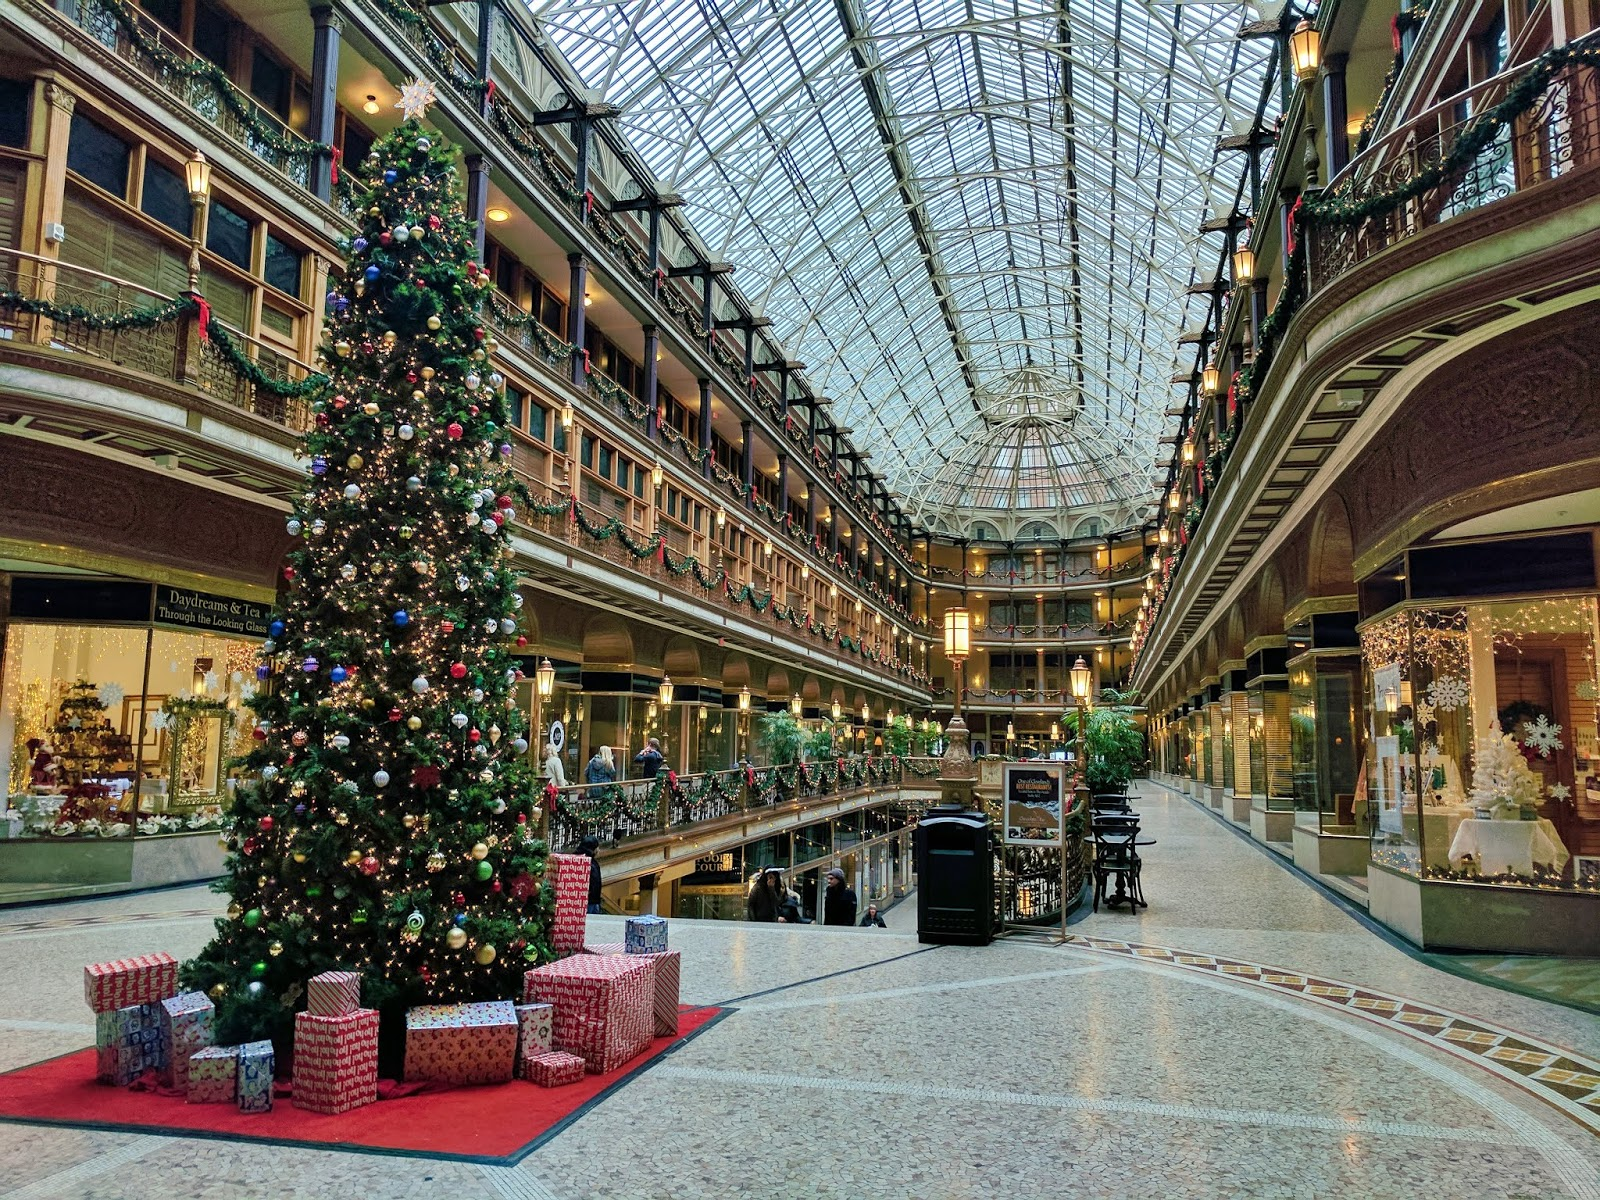 A photo of the inside of a shopping mall decorated for Christmas, on the top floor, taken from the right corner of a length of shops. A Christmas tree with presents around the bottom of it is on the left hand side, just in front of a long opening in the floor, where shoppers are coming up on an escalator.